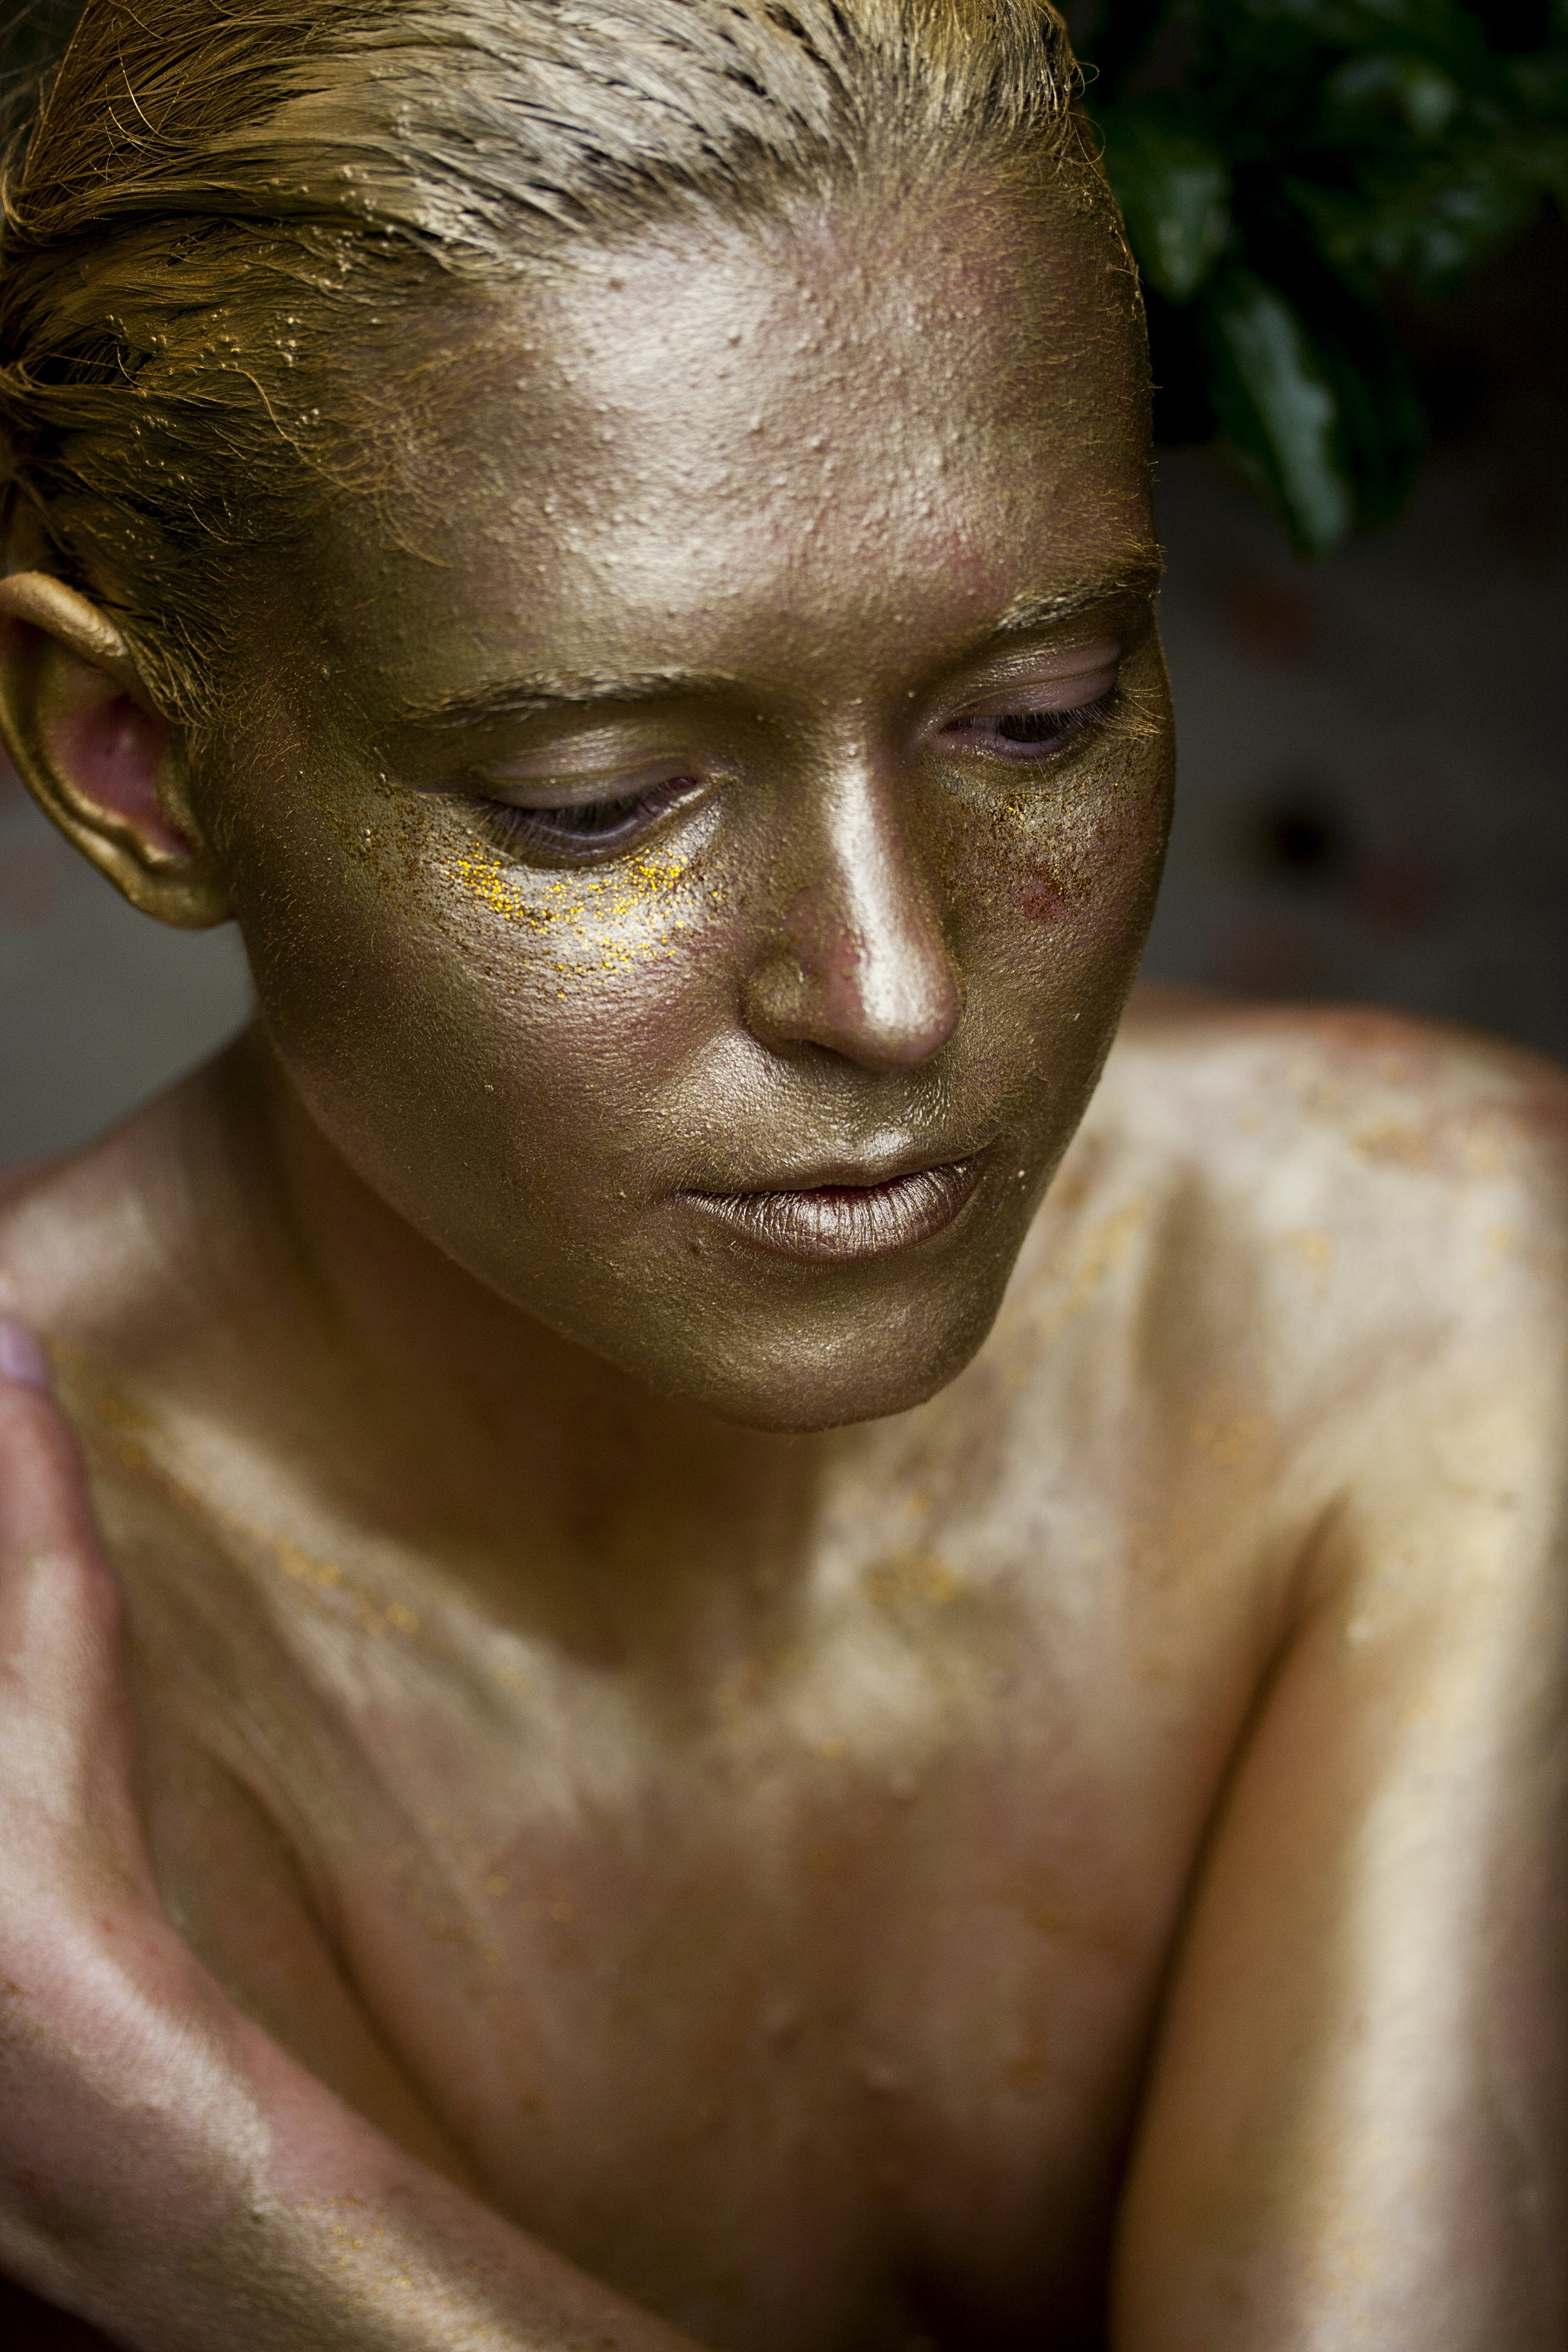 Woman Wearing Gold Body Paint